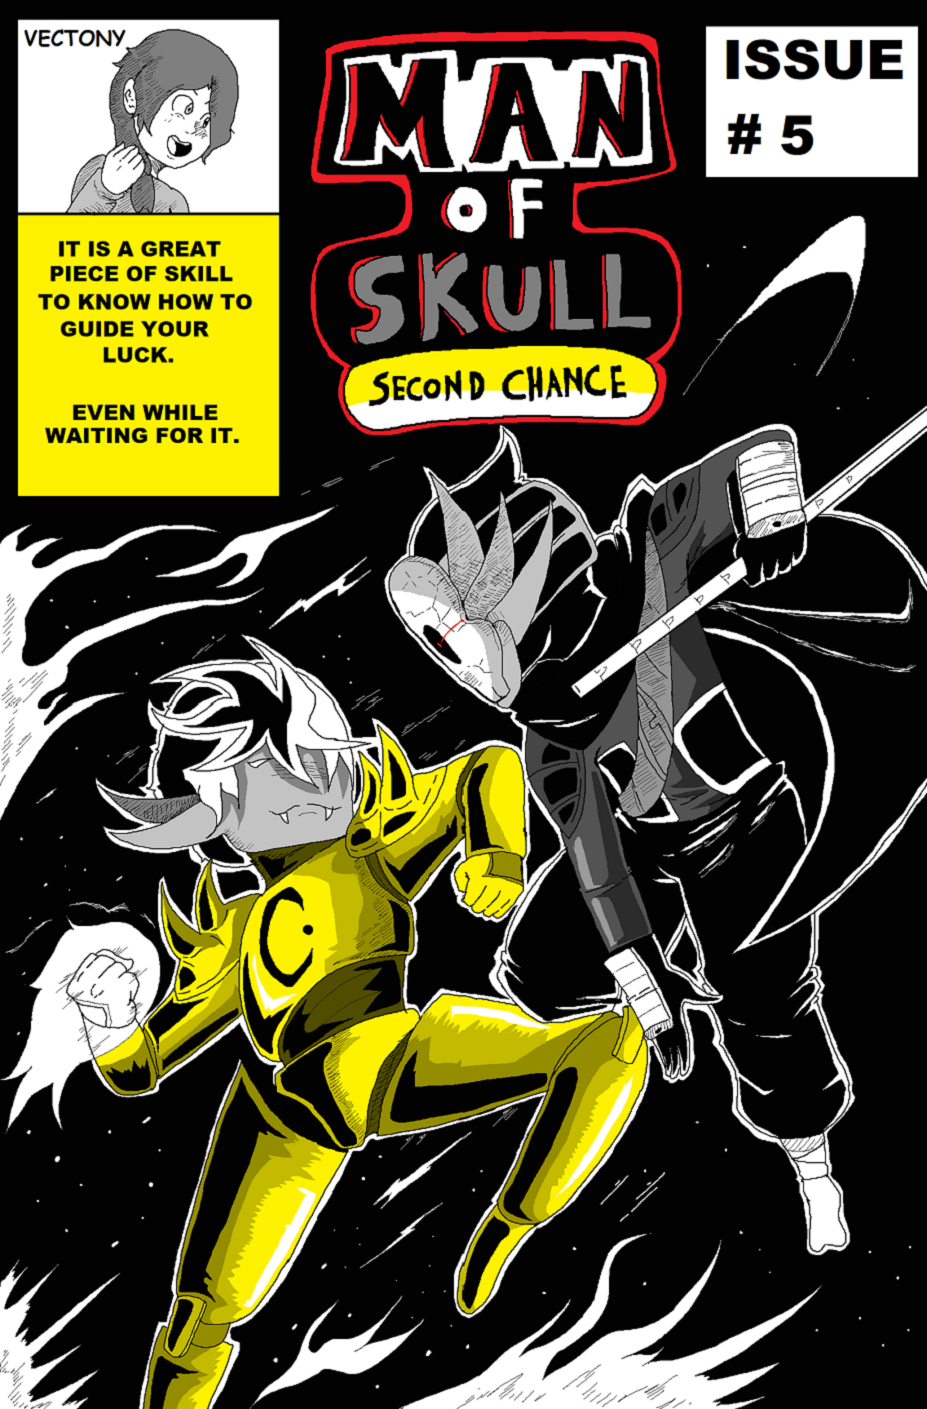 Man Of Skull Second Chance  5